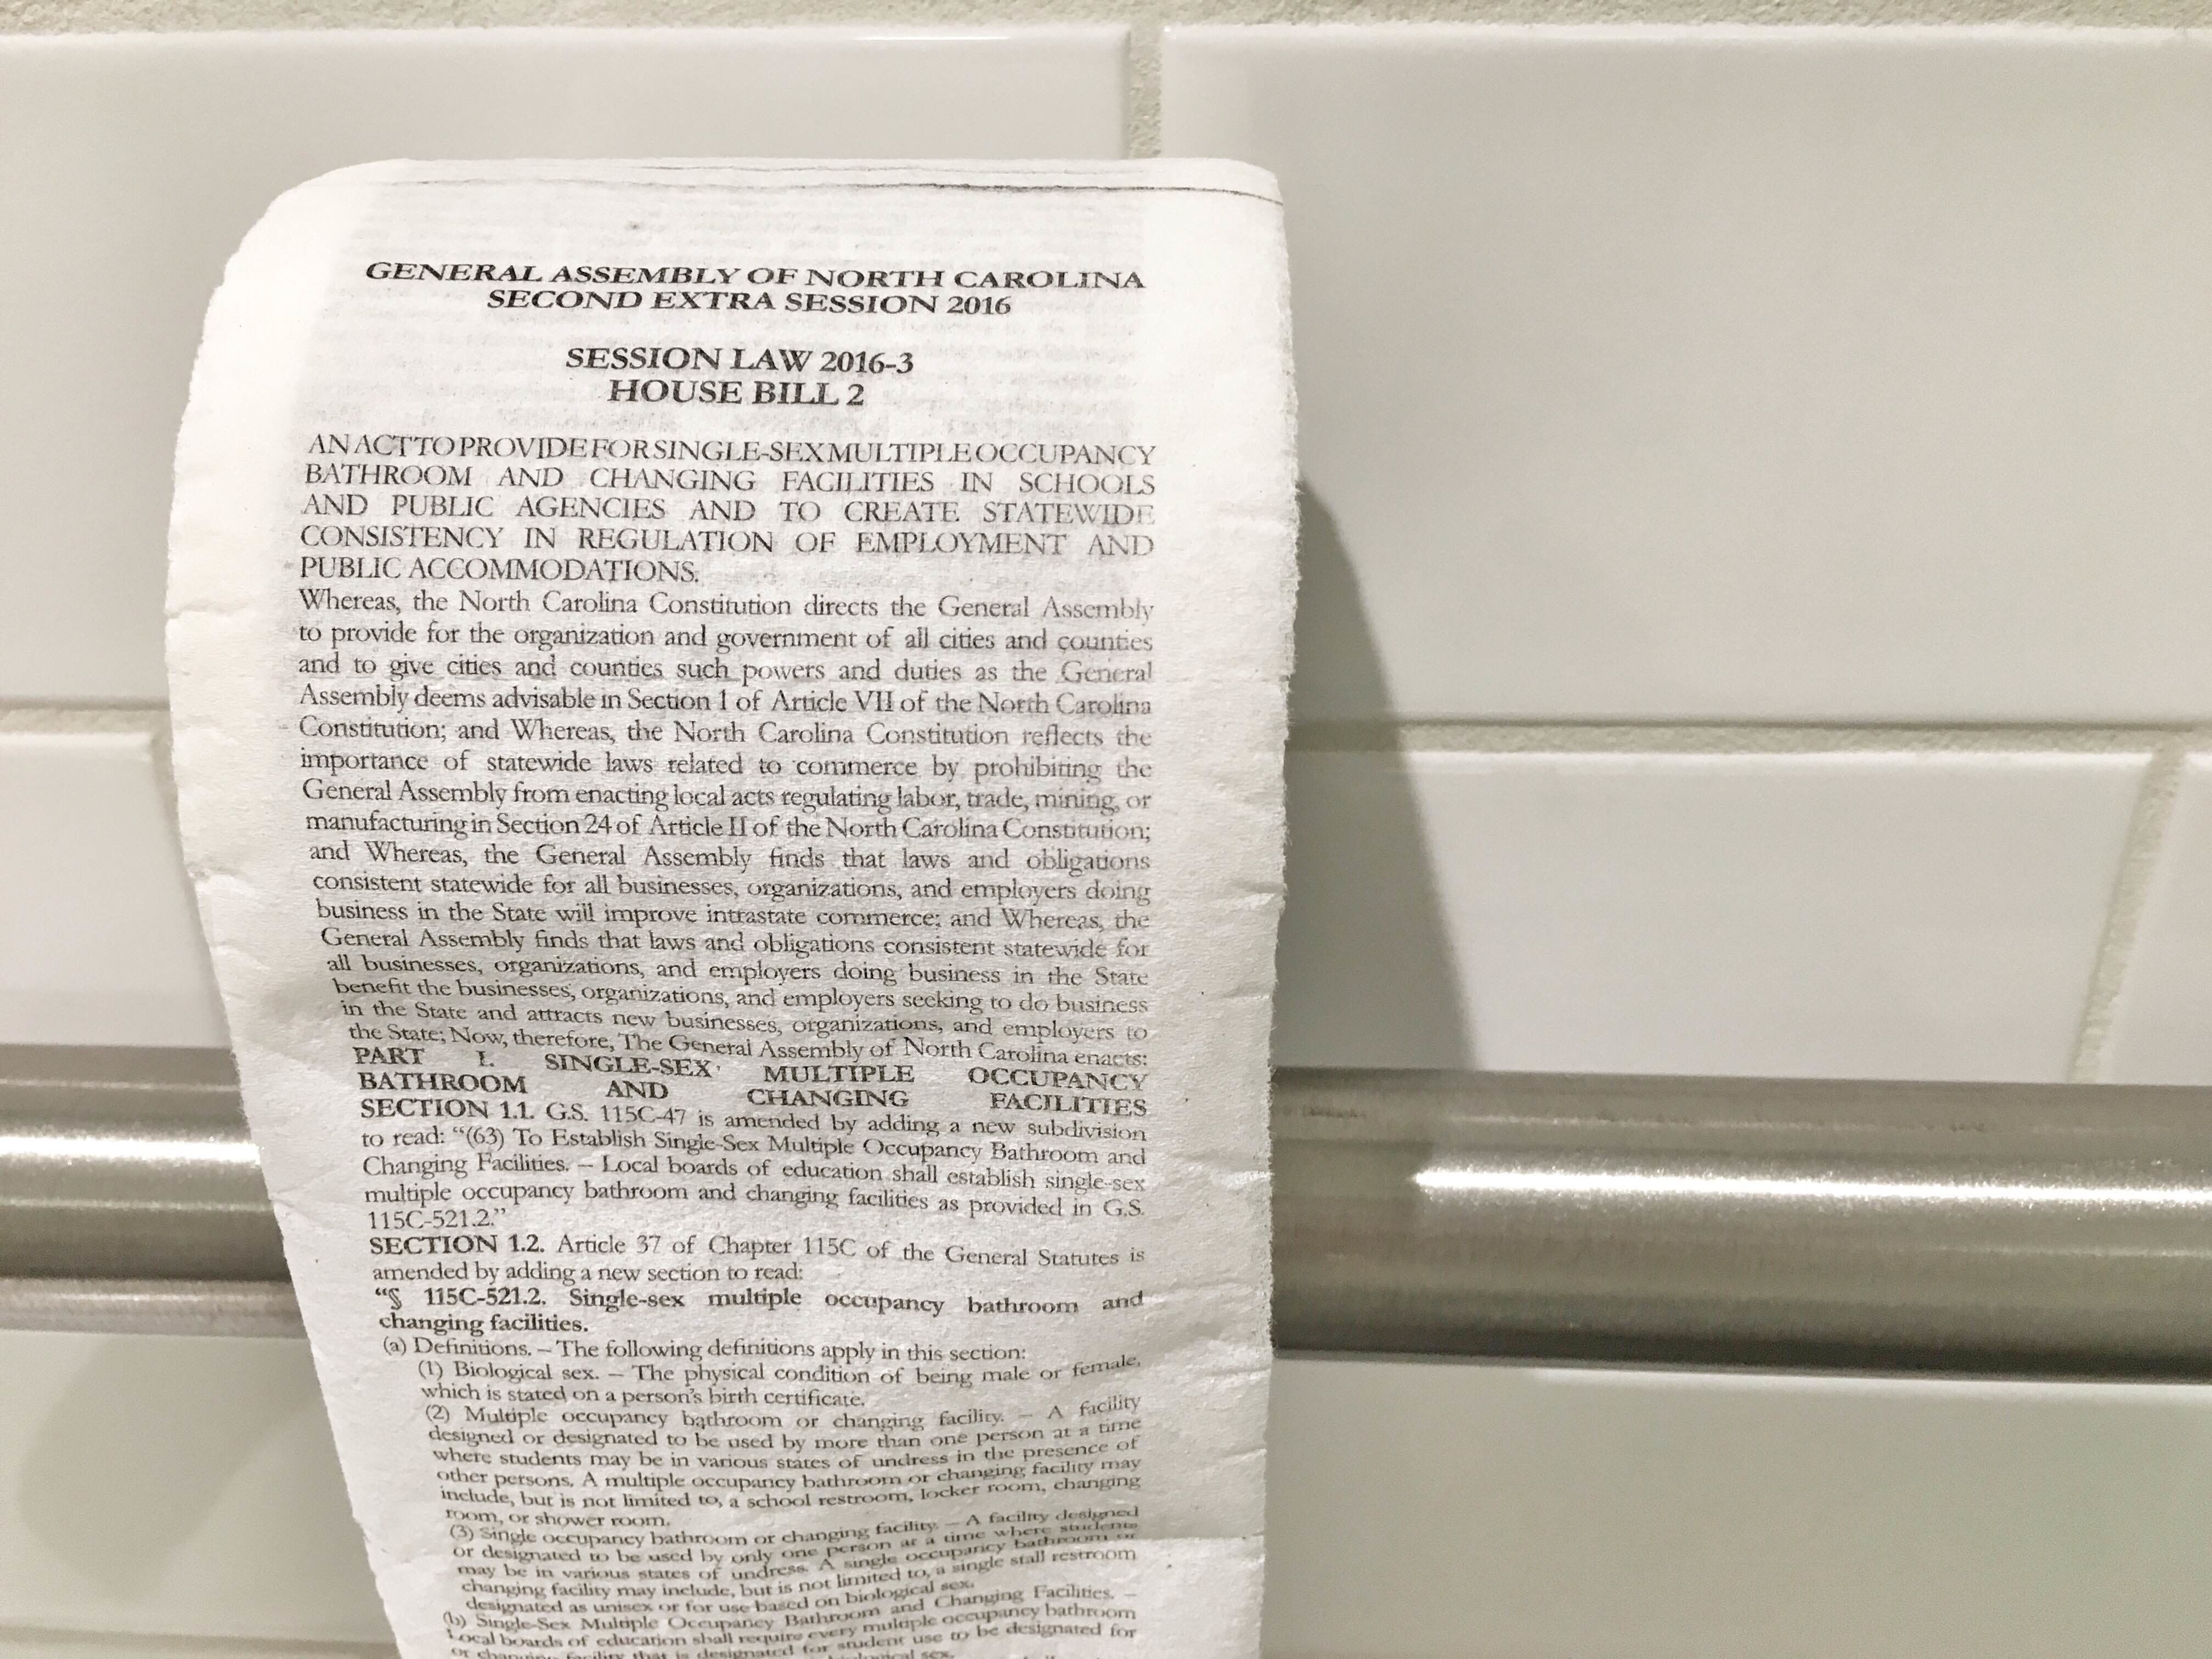 The Huffington Post received this roll of custom-printed toilet paper from North Carolina-based ad agency McKinney.